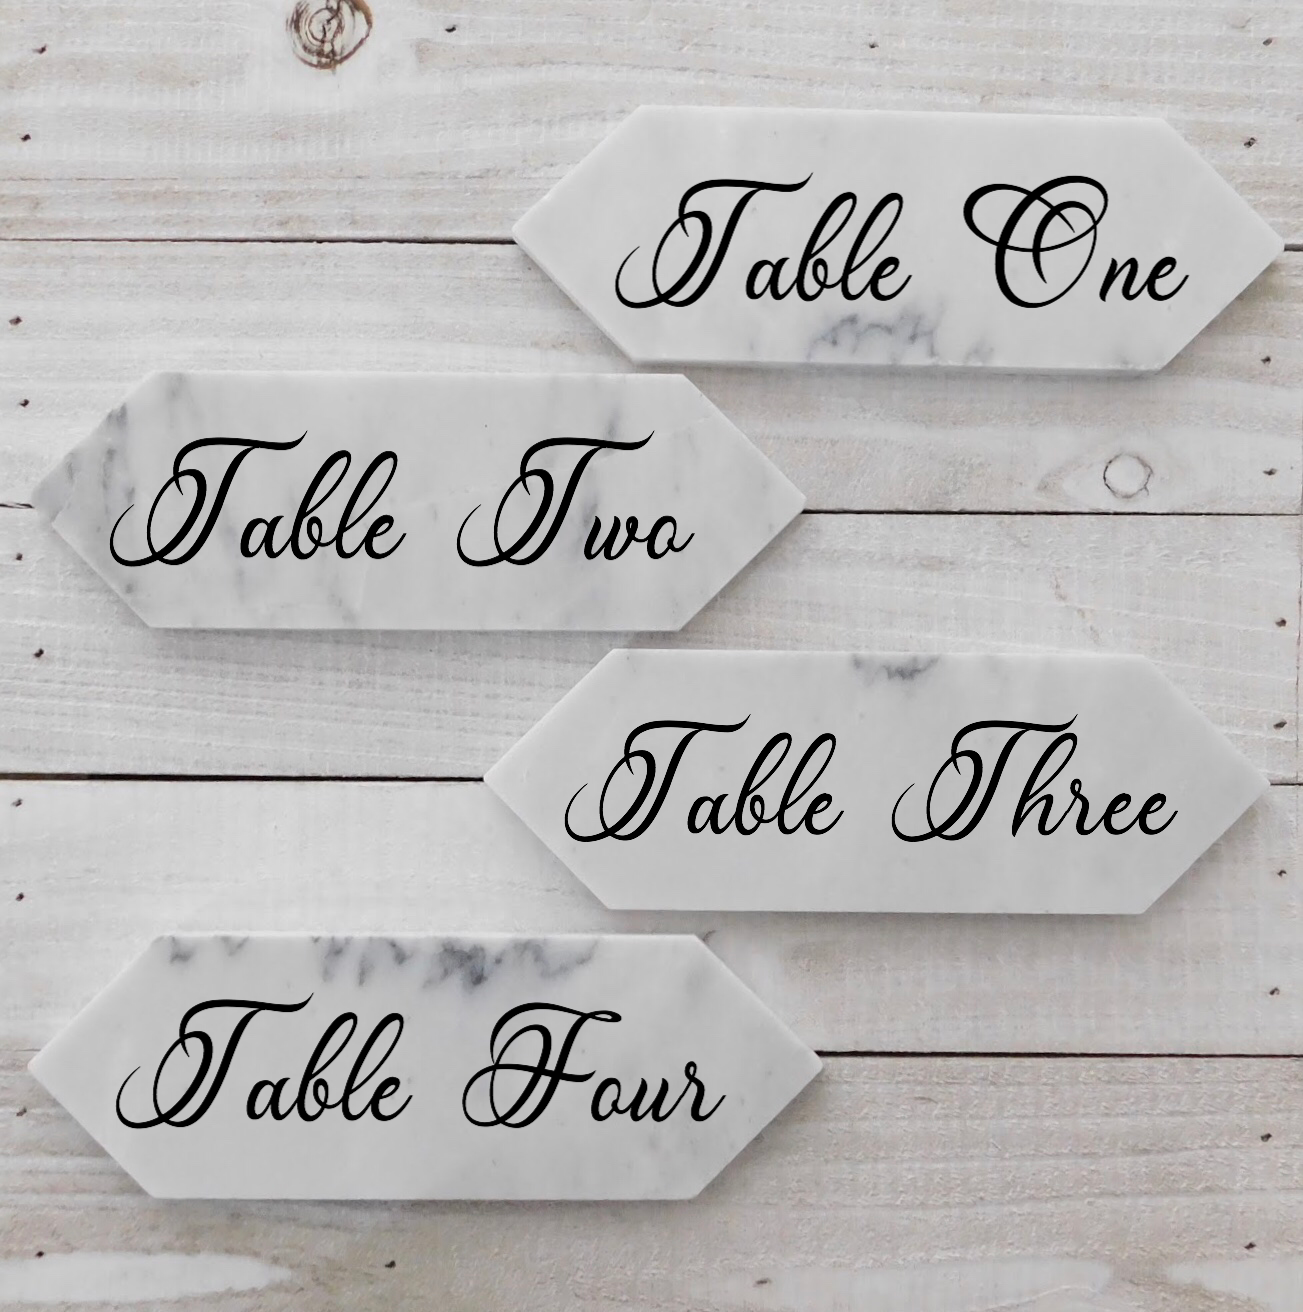 Handcrafted Personalized Carrara Marble Table Numbers